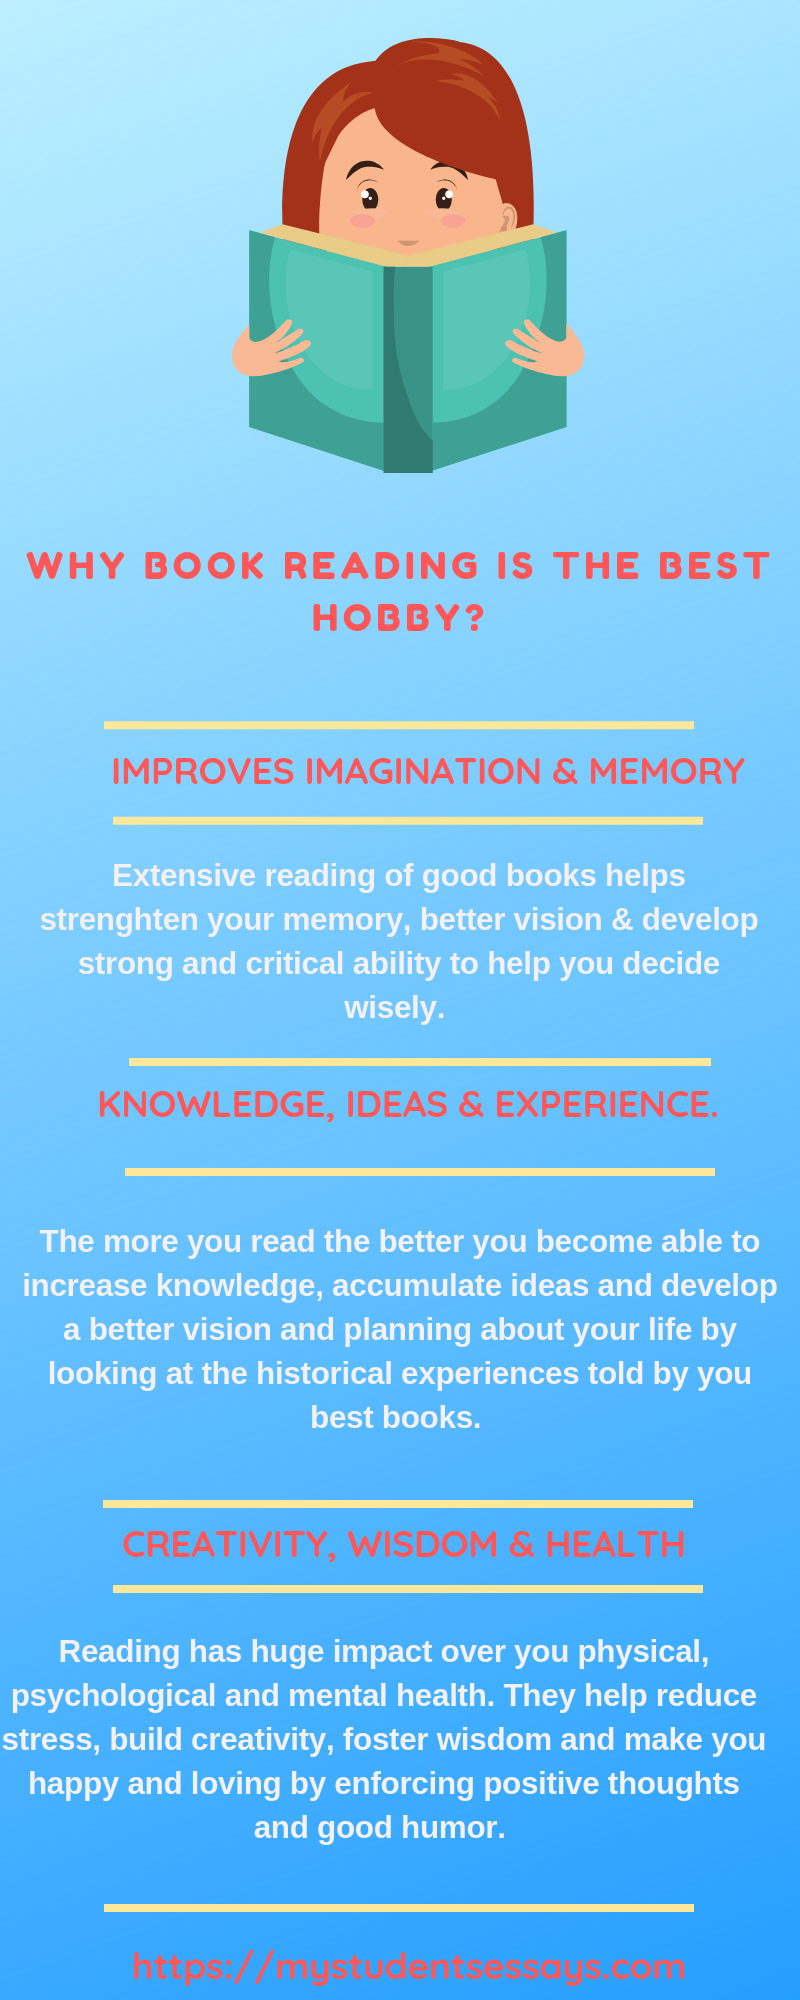 My hobby books reading essay, short speech and paragraph